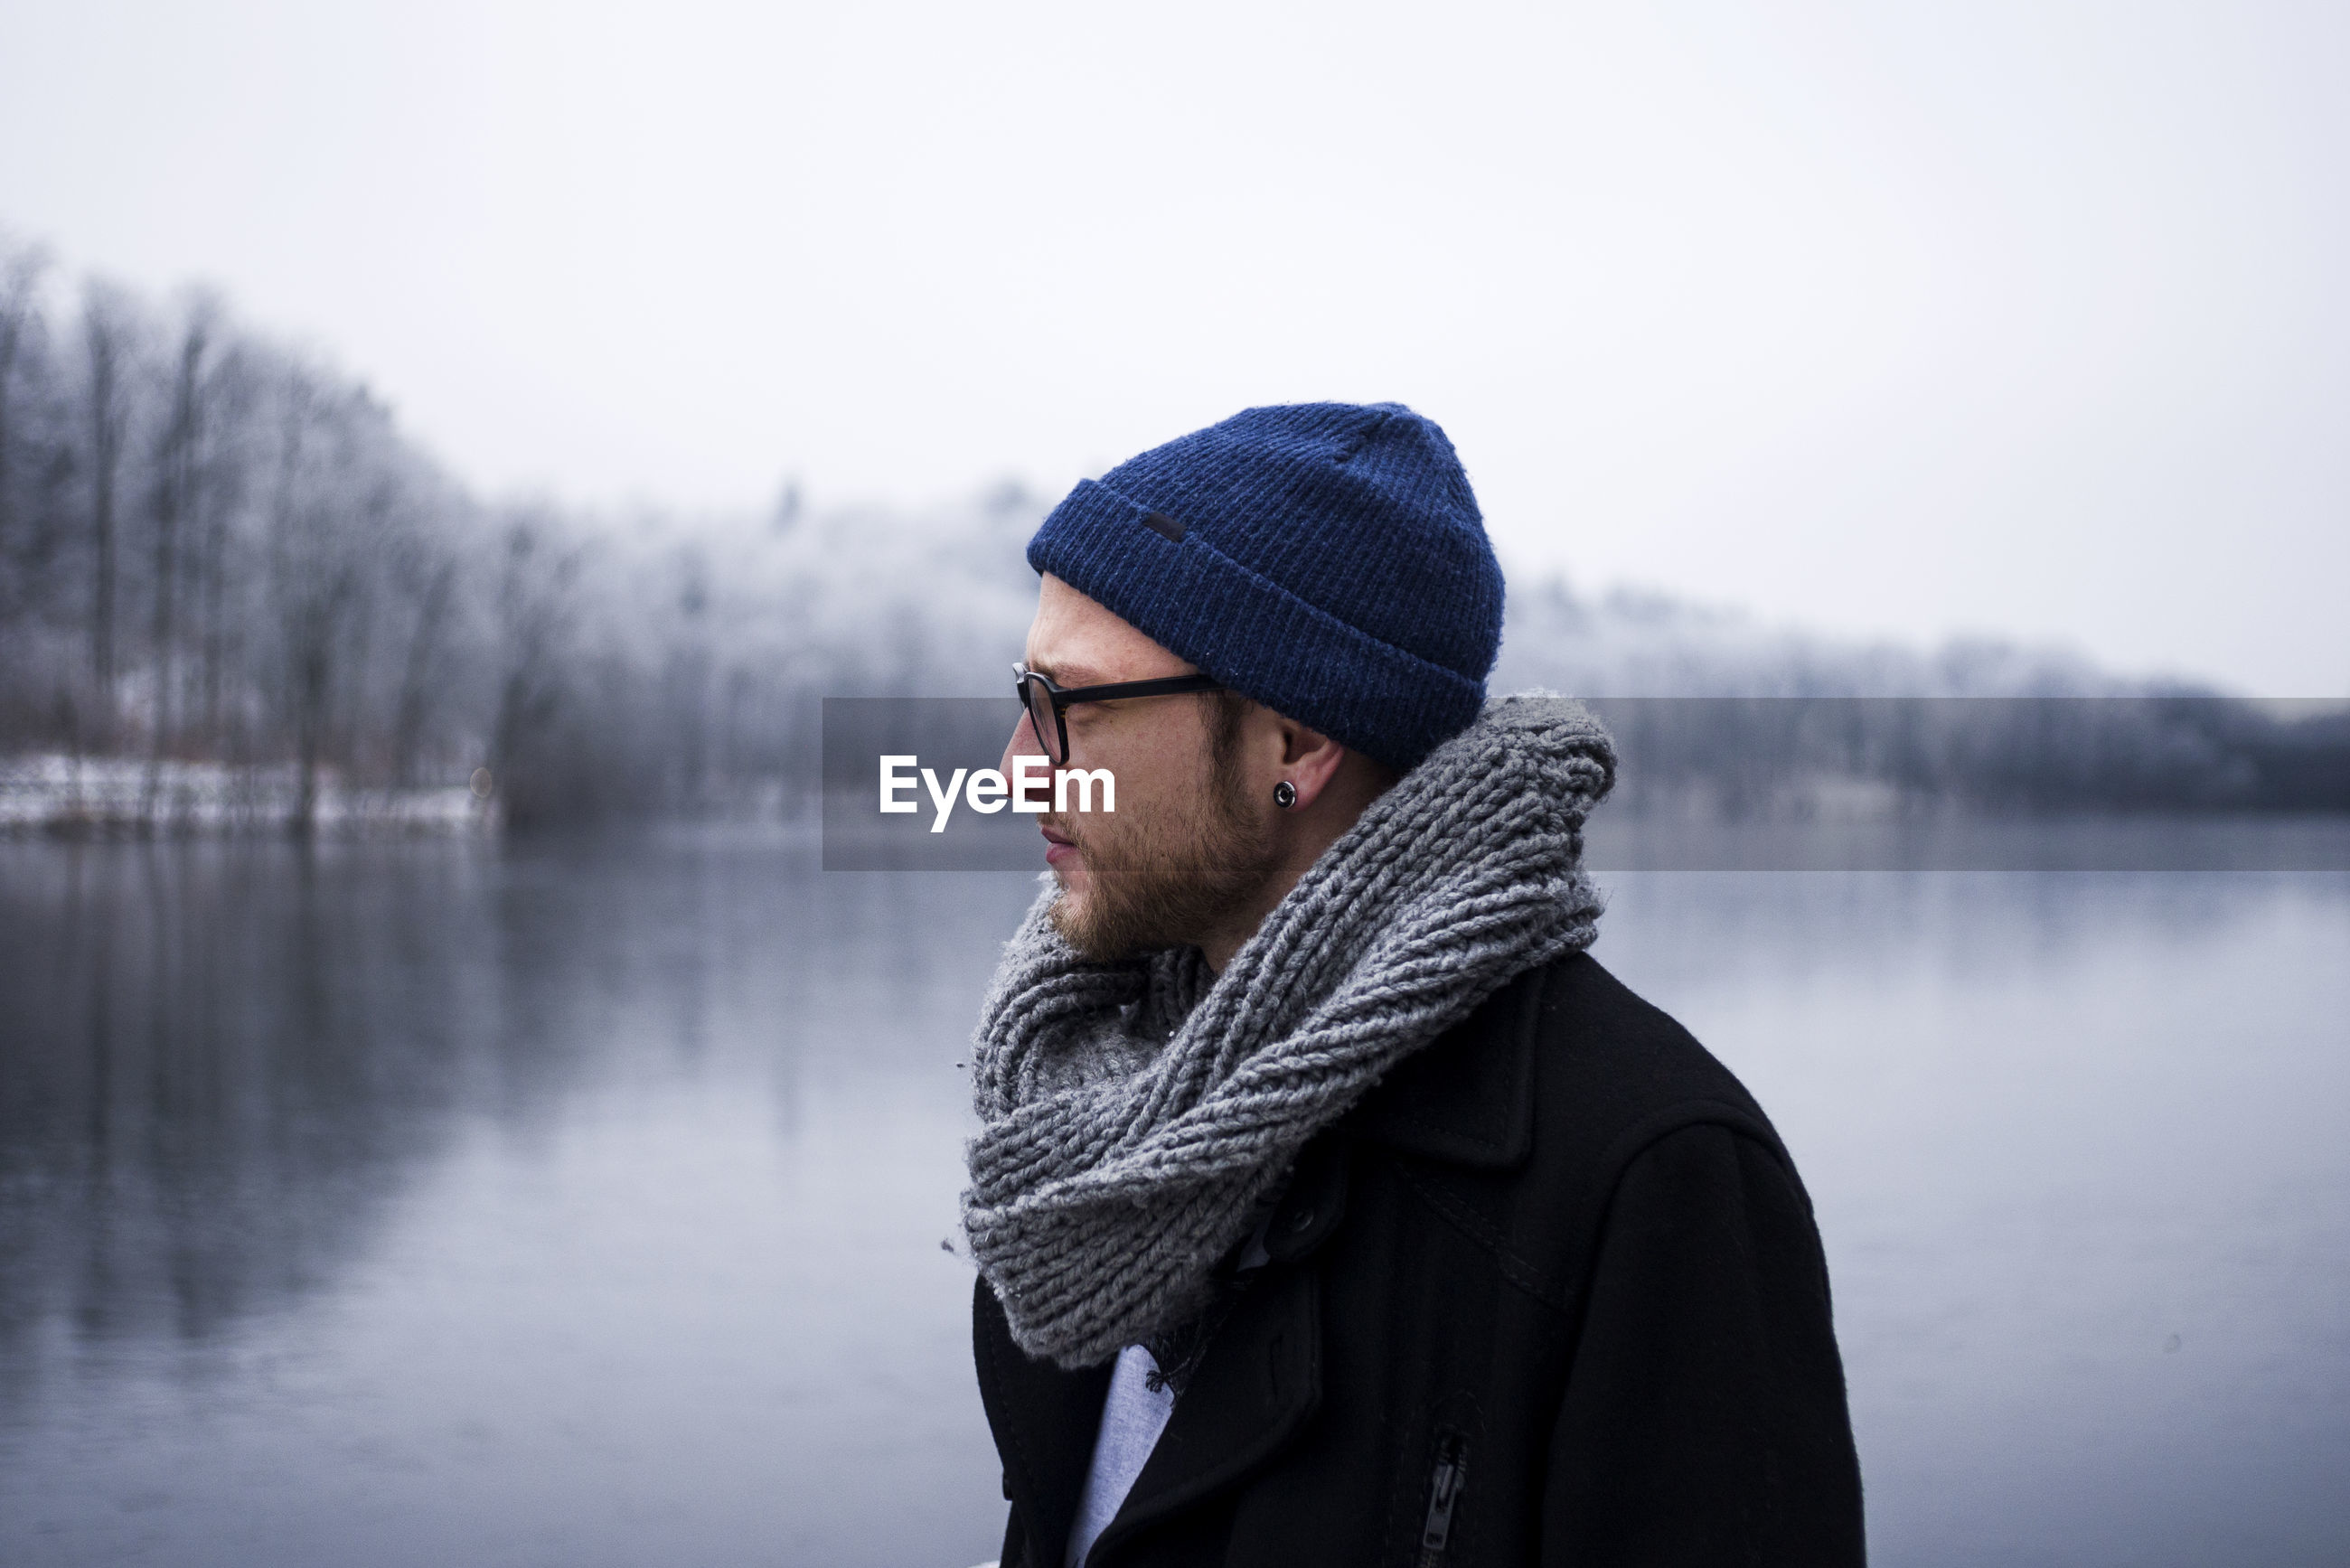 Young man looking away against lake and sky during winter